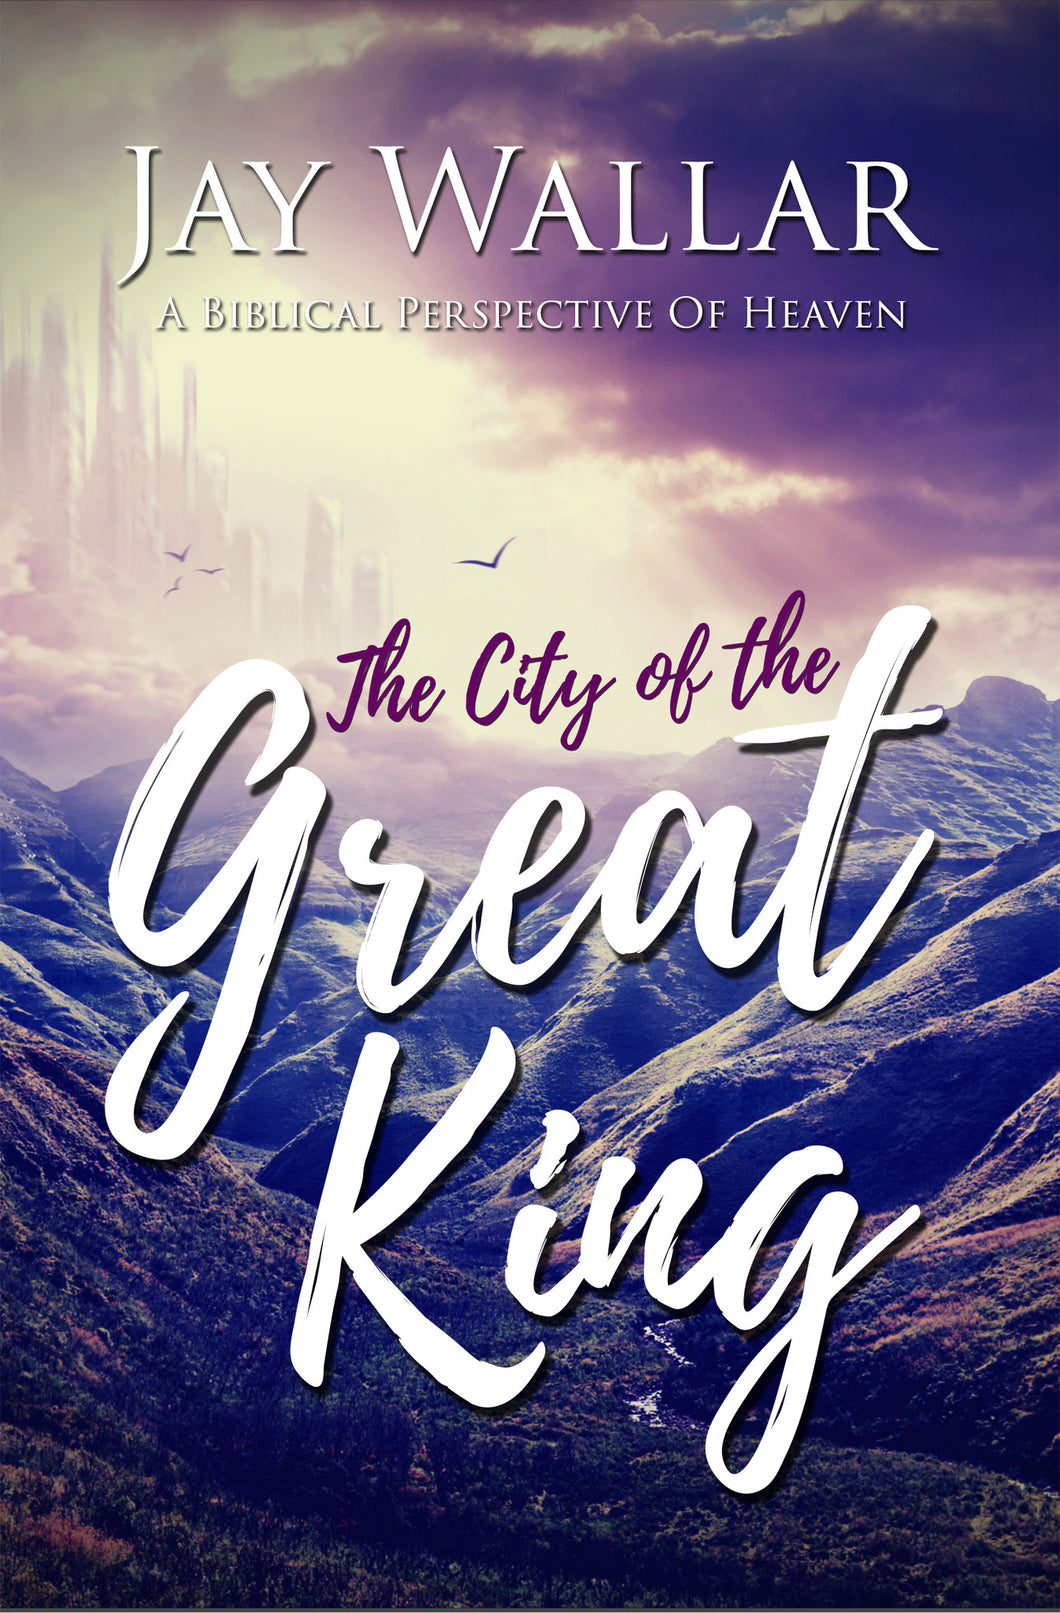 Book: The City of the Great King / A Biblical Perspective of Heaven by Jay Wallar